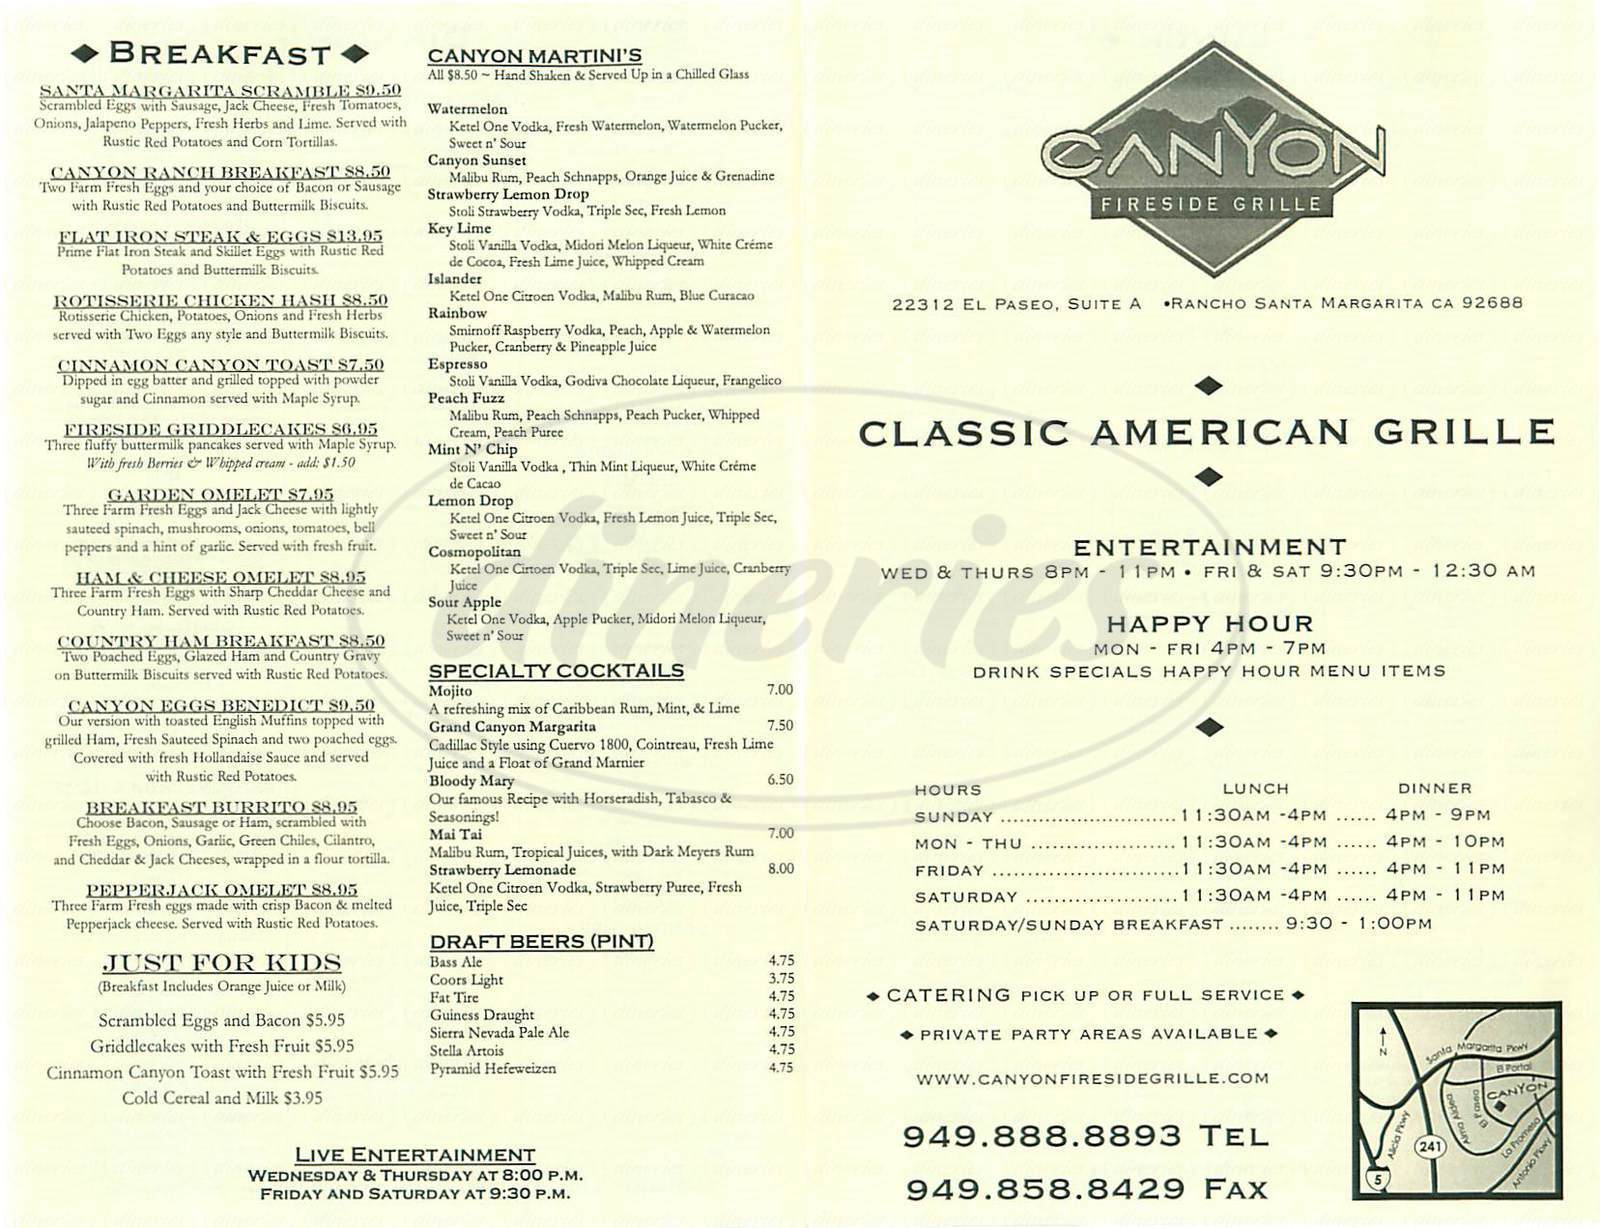 menu for Canyon Fireside Grille